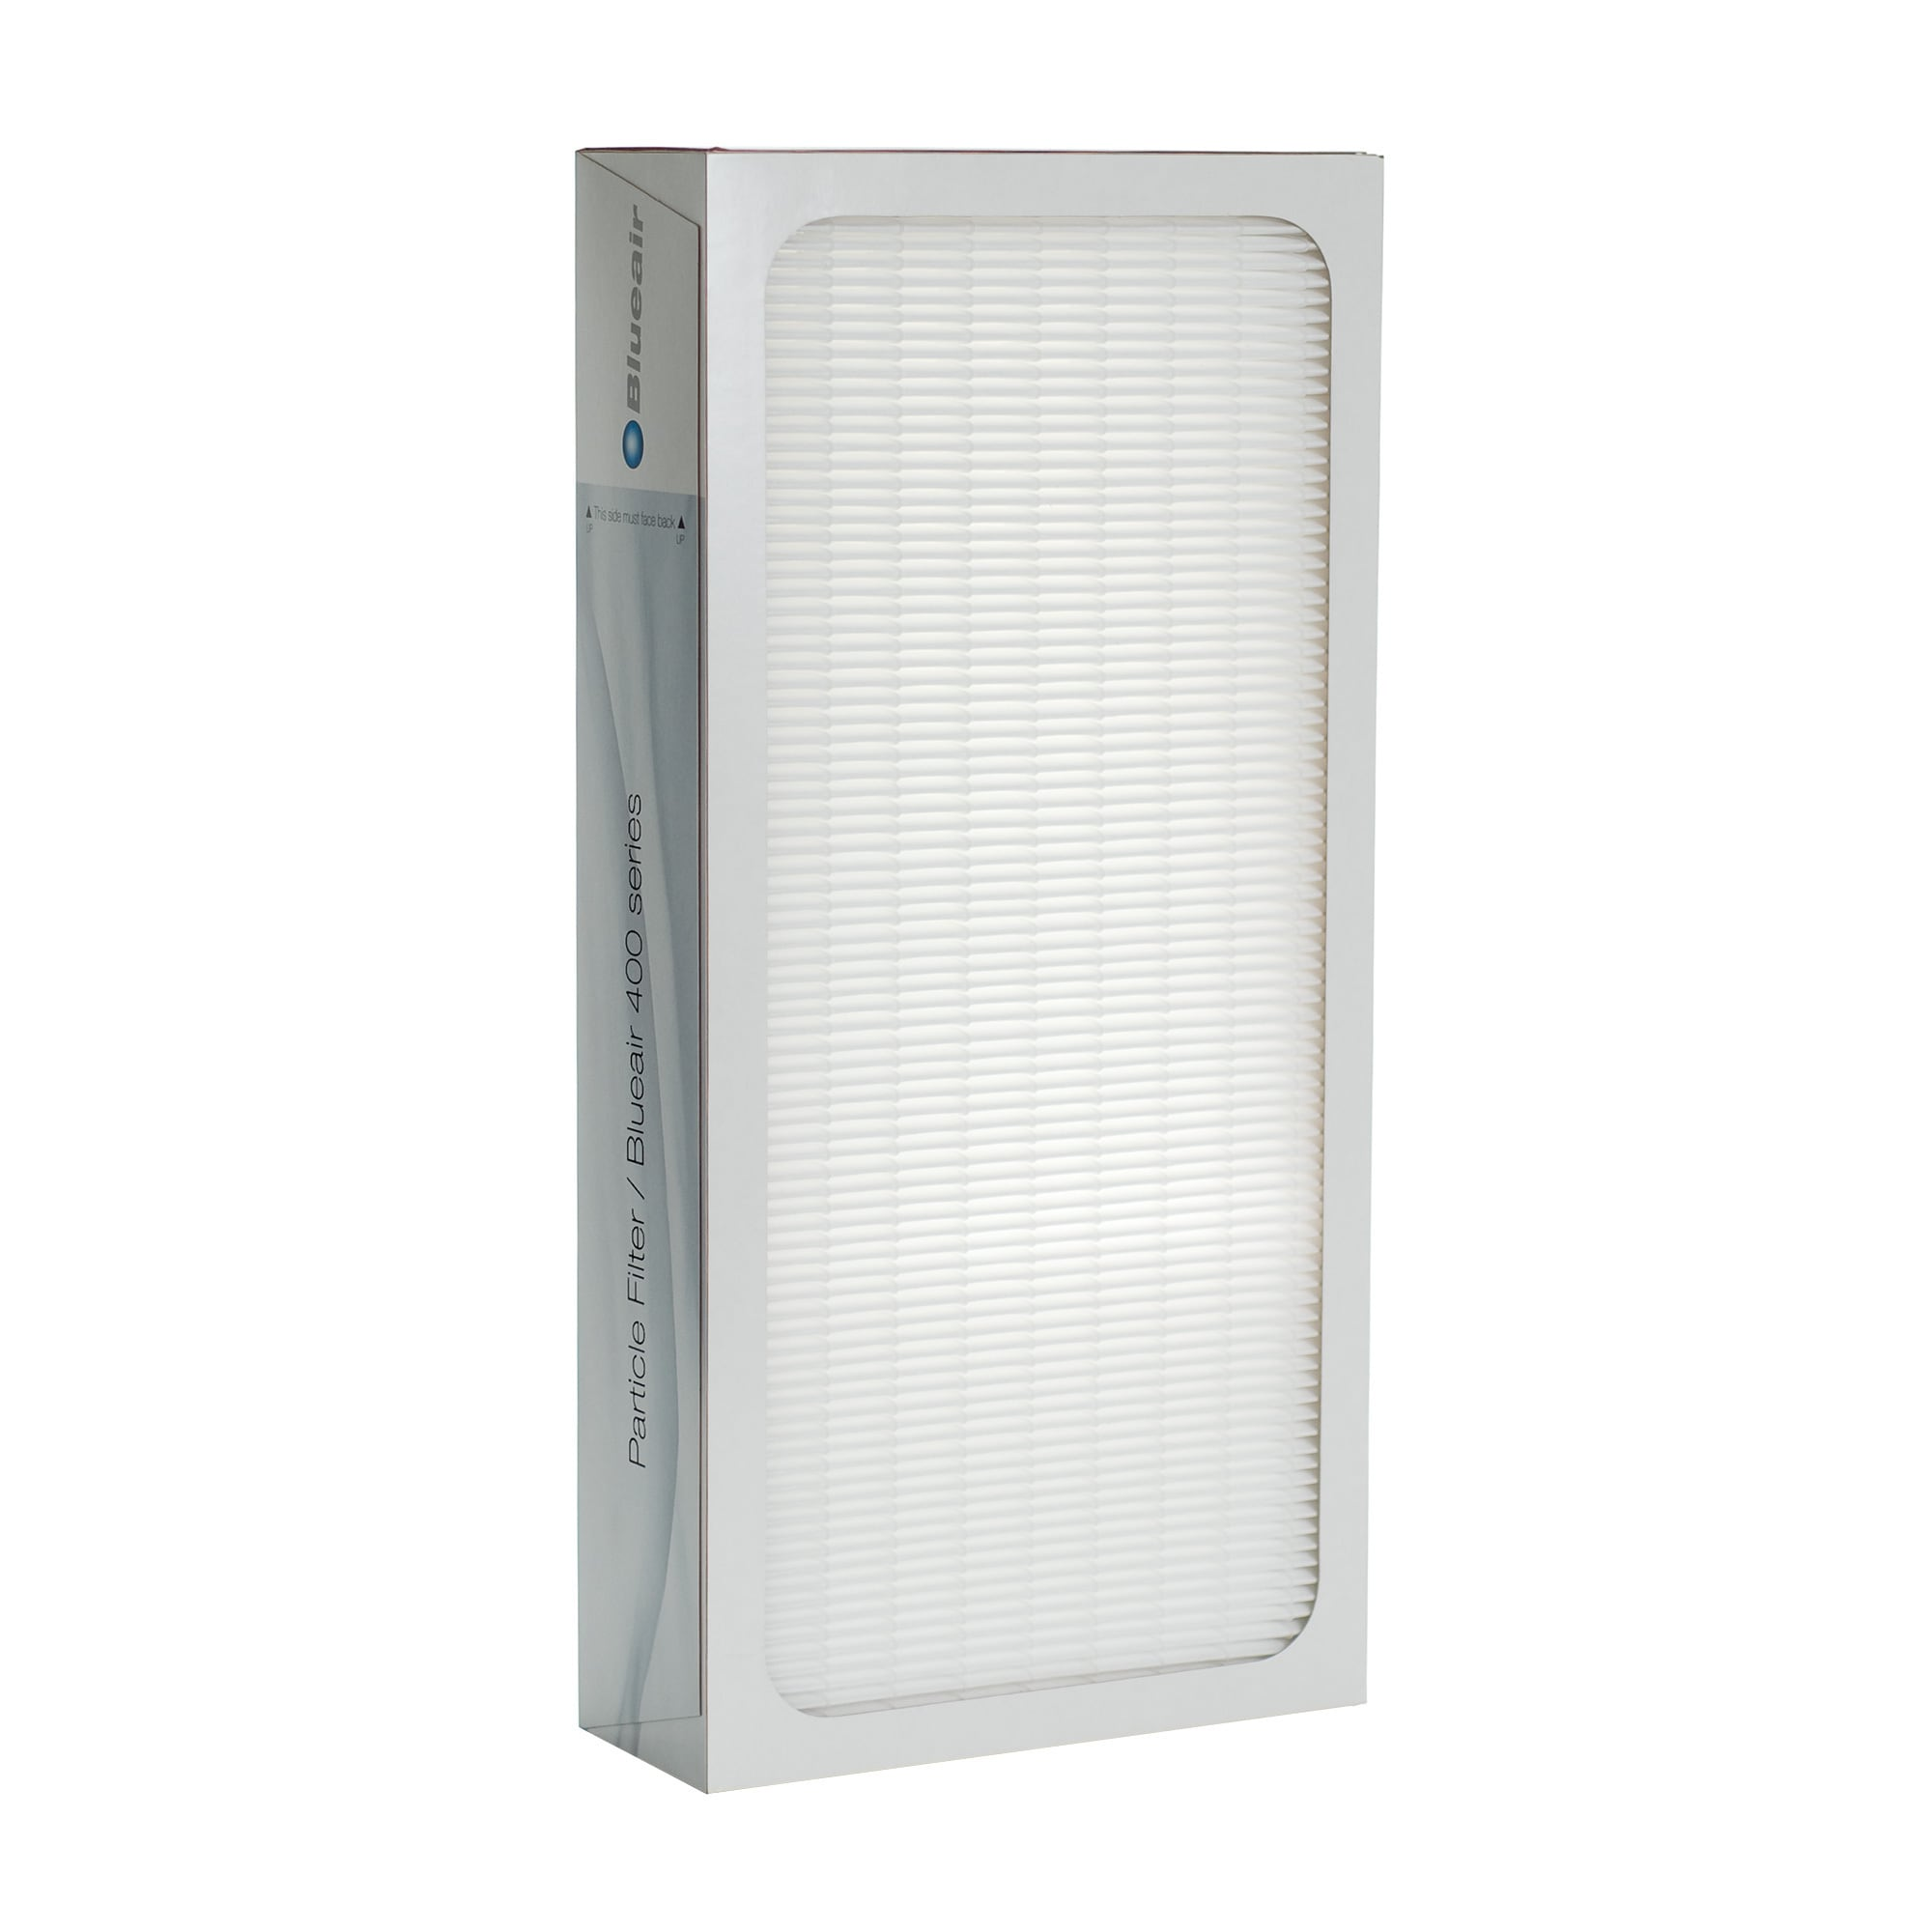 BlueAir 400 Series Replacement Particle Filter (400 Serie...